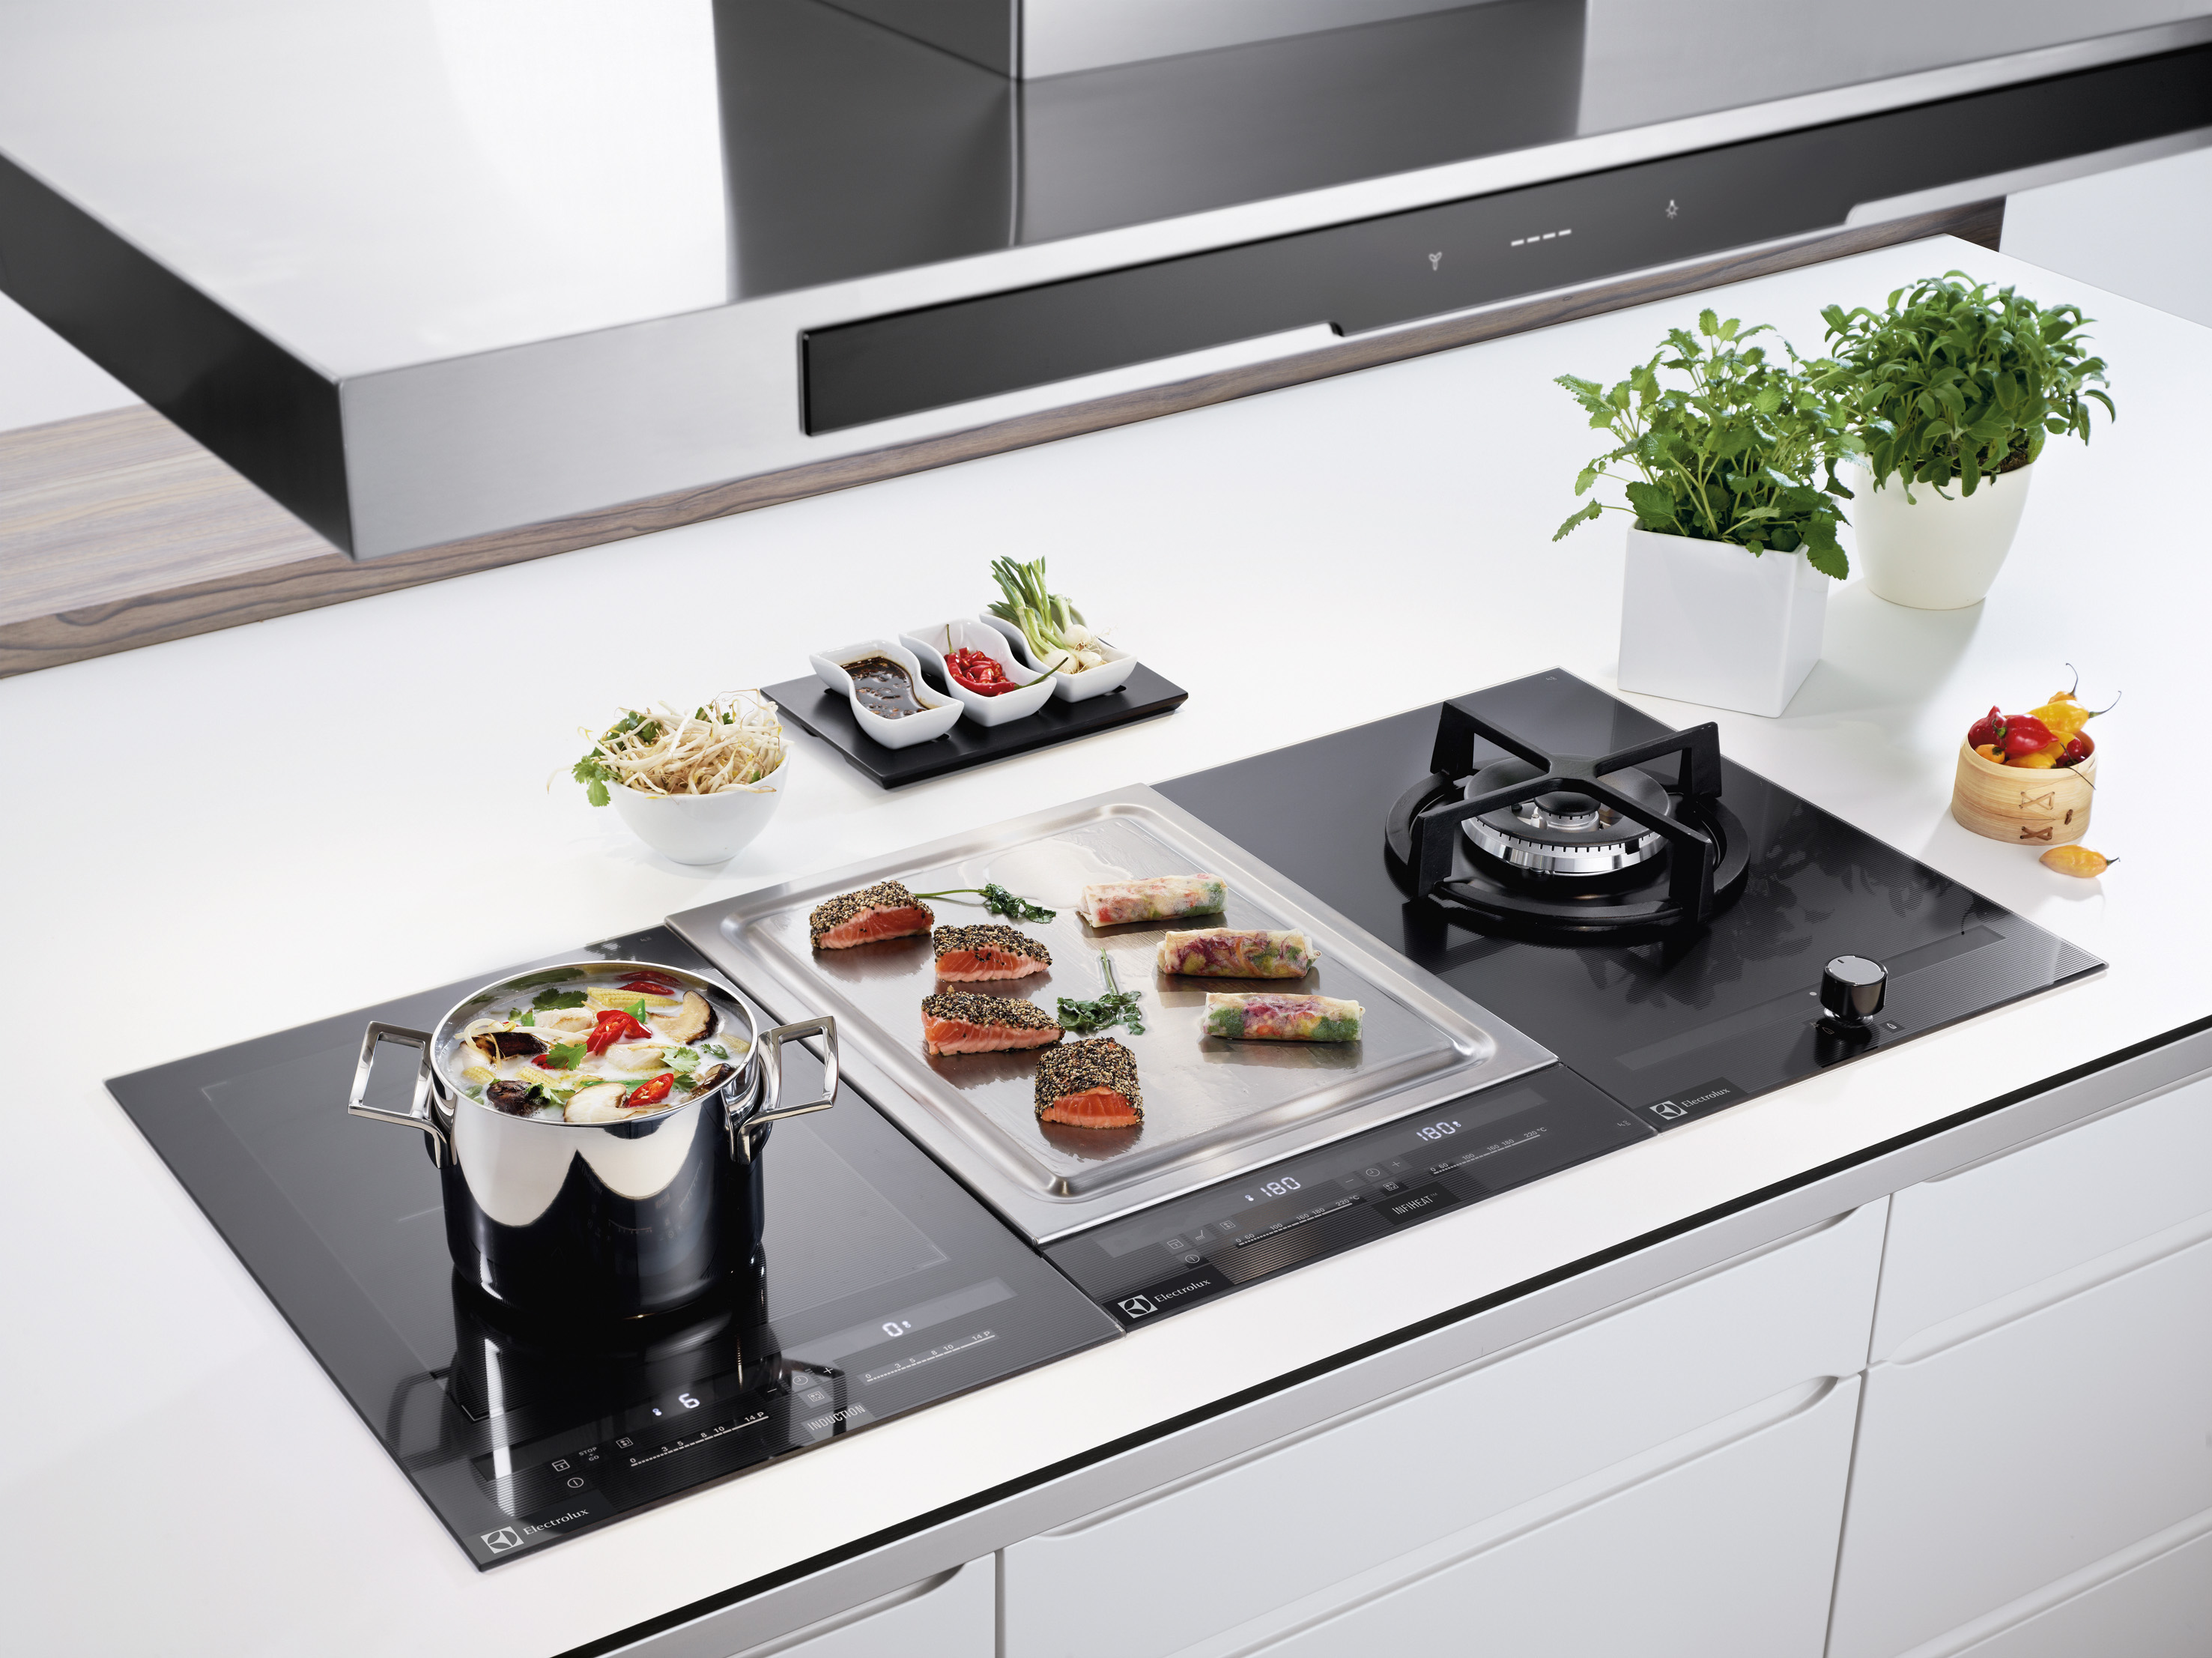 electrolux eqt4520bog teppanyaki grillmodul asiatisch kochen mit stil. Black Bedroom Furniture Sets. Home Design Ideas